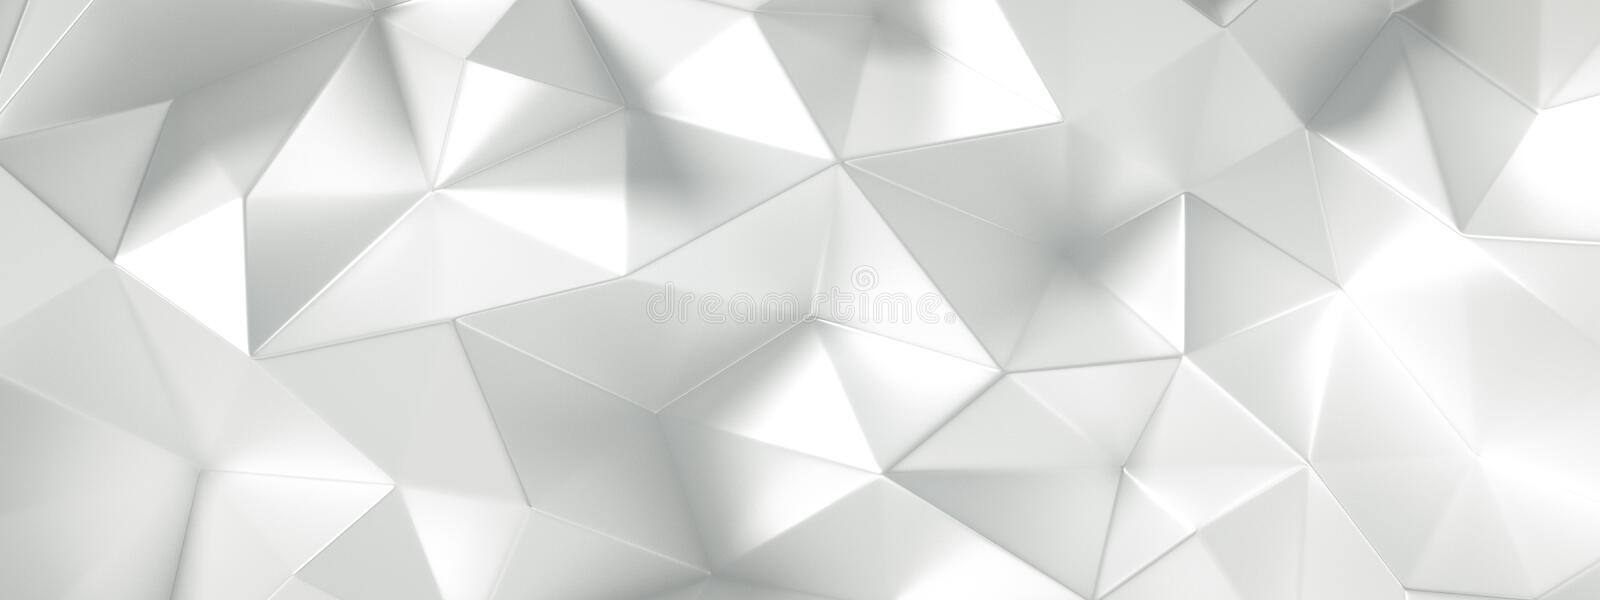 White background with crystals, triangles. 3d illustration, 3d rendering.  stock illustration